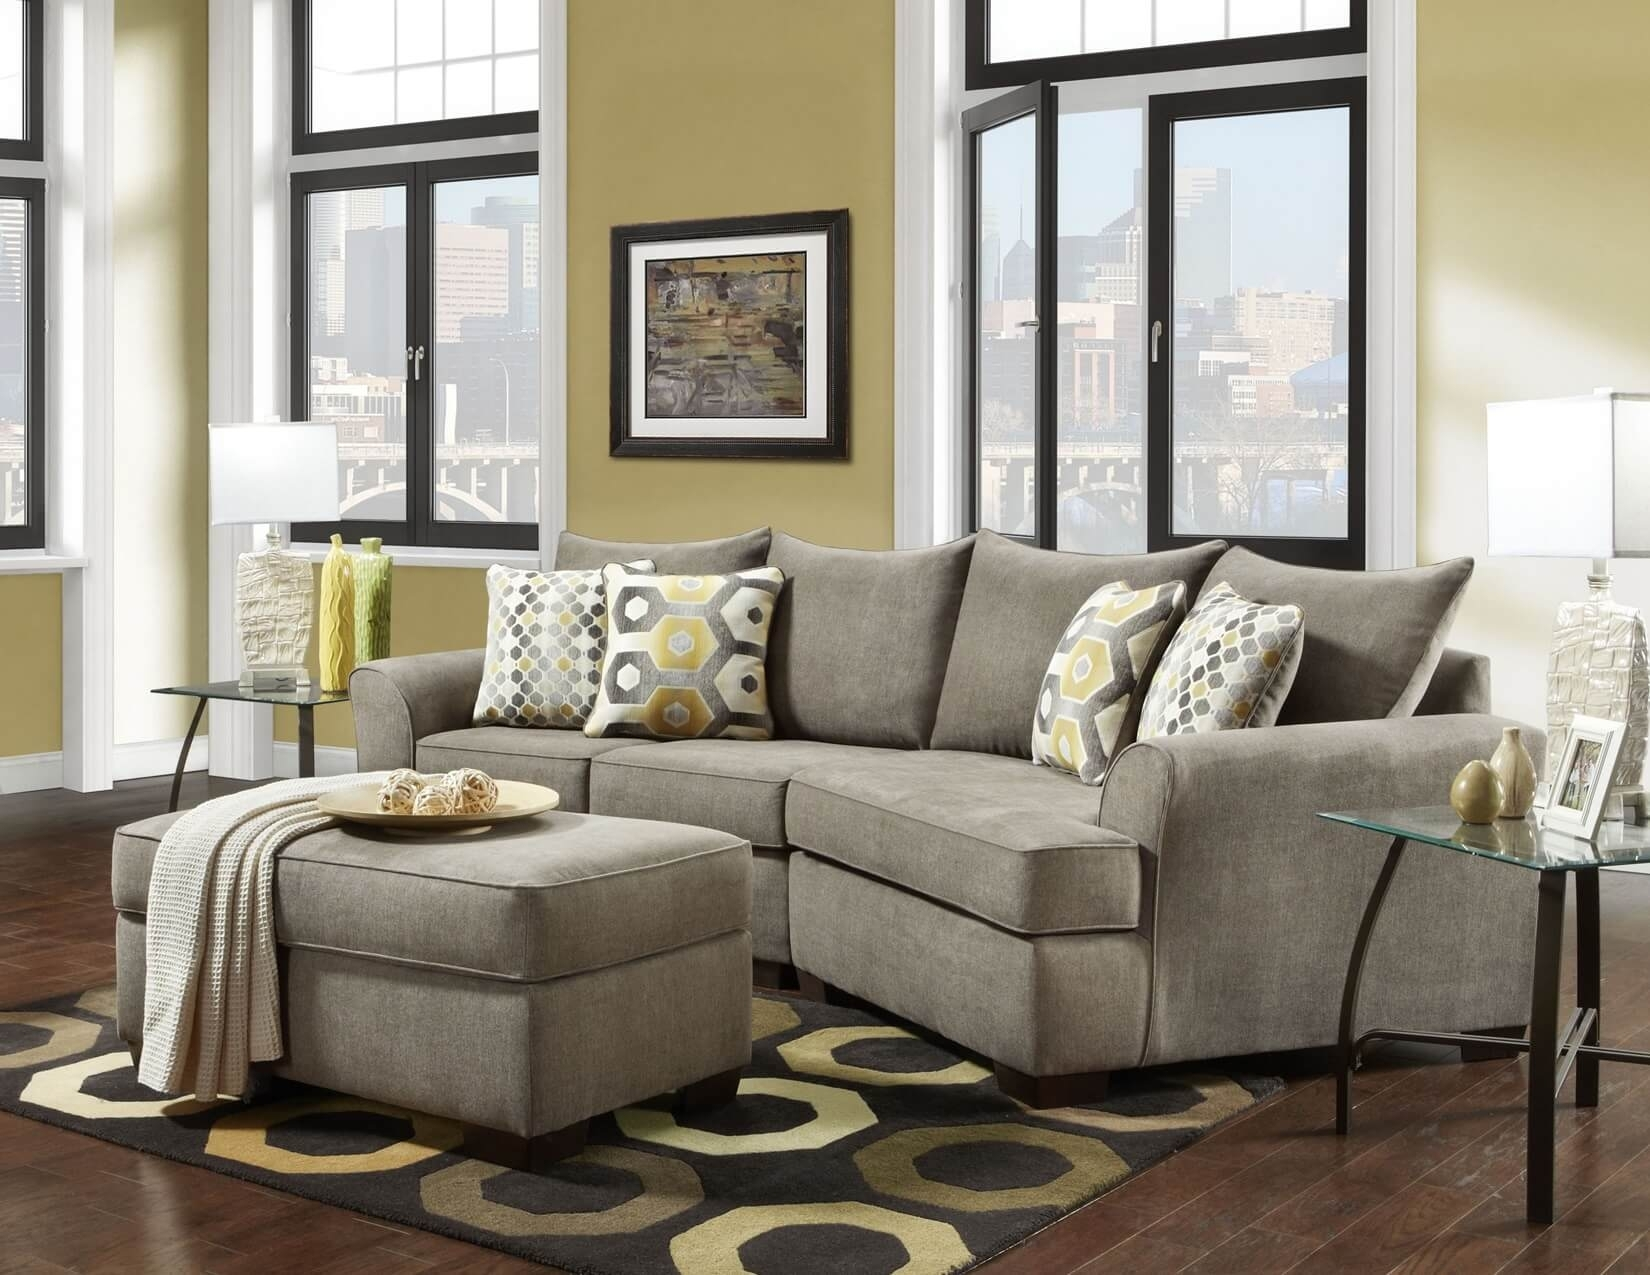 Essence Platinum 3 Pc Cuddler Sectional | Sectional Sofa Sets regarding Cuddler Sectional Sofas (Image 6 of 10)